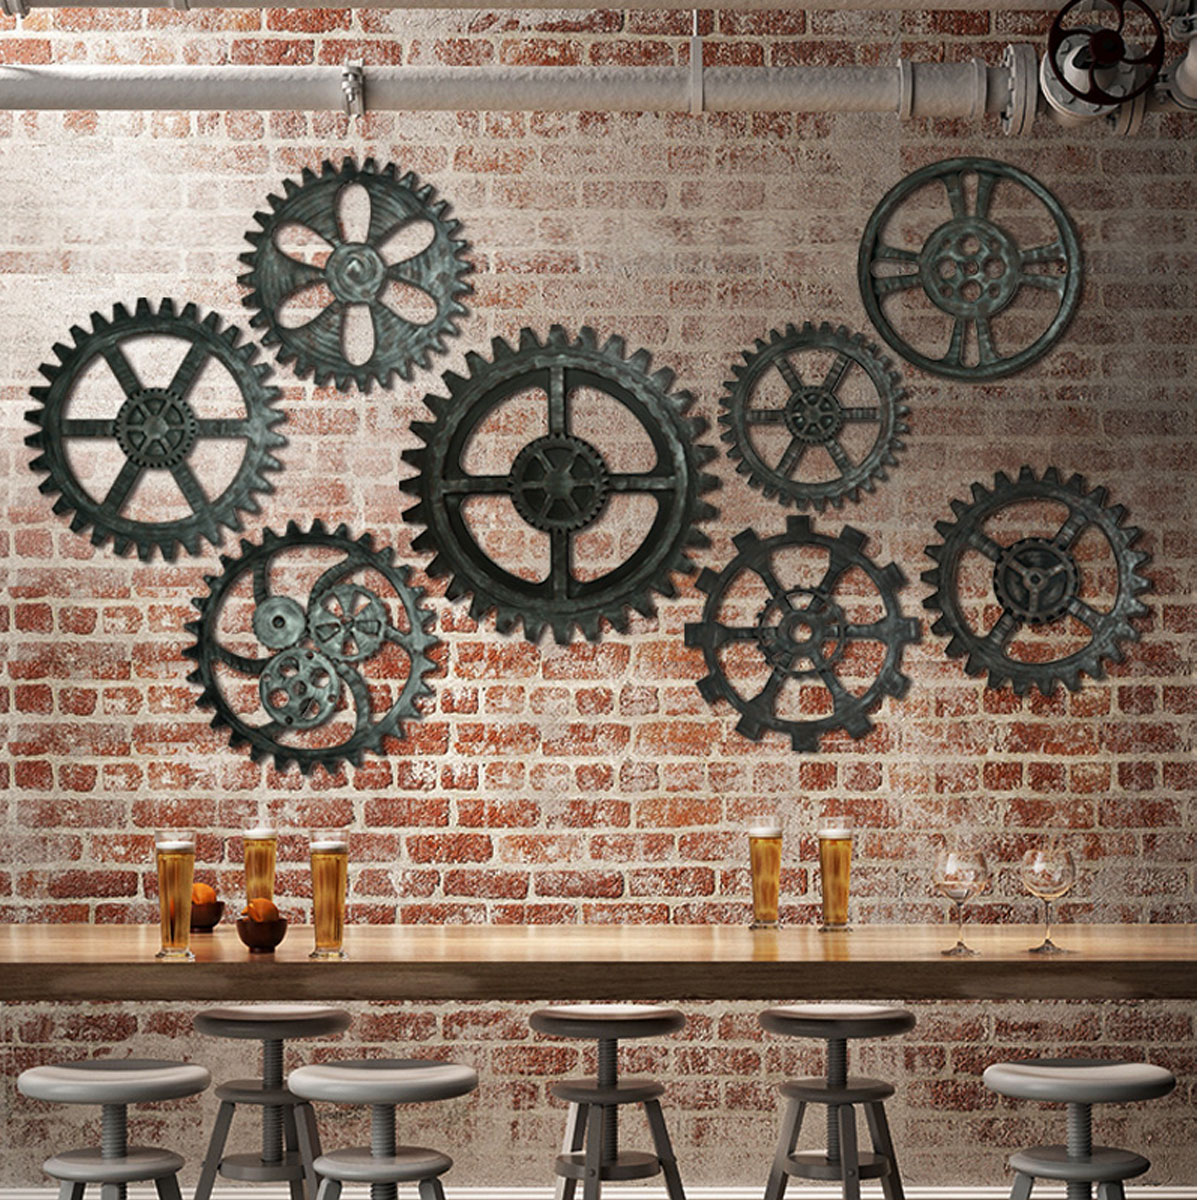 41cm Vintage Retro Gear Wall Hanging Decor Industrial Antique Art Home Bar Cafe Hotel